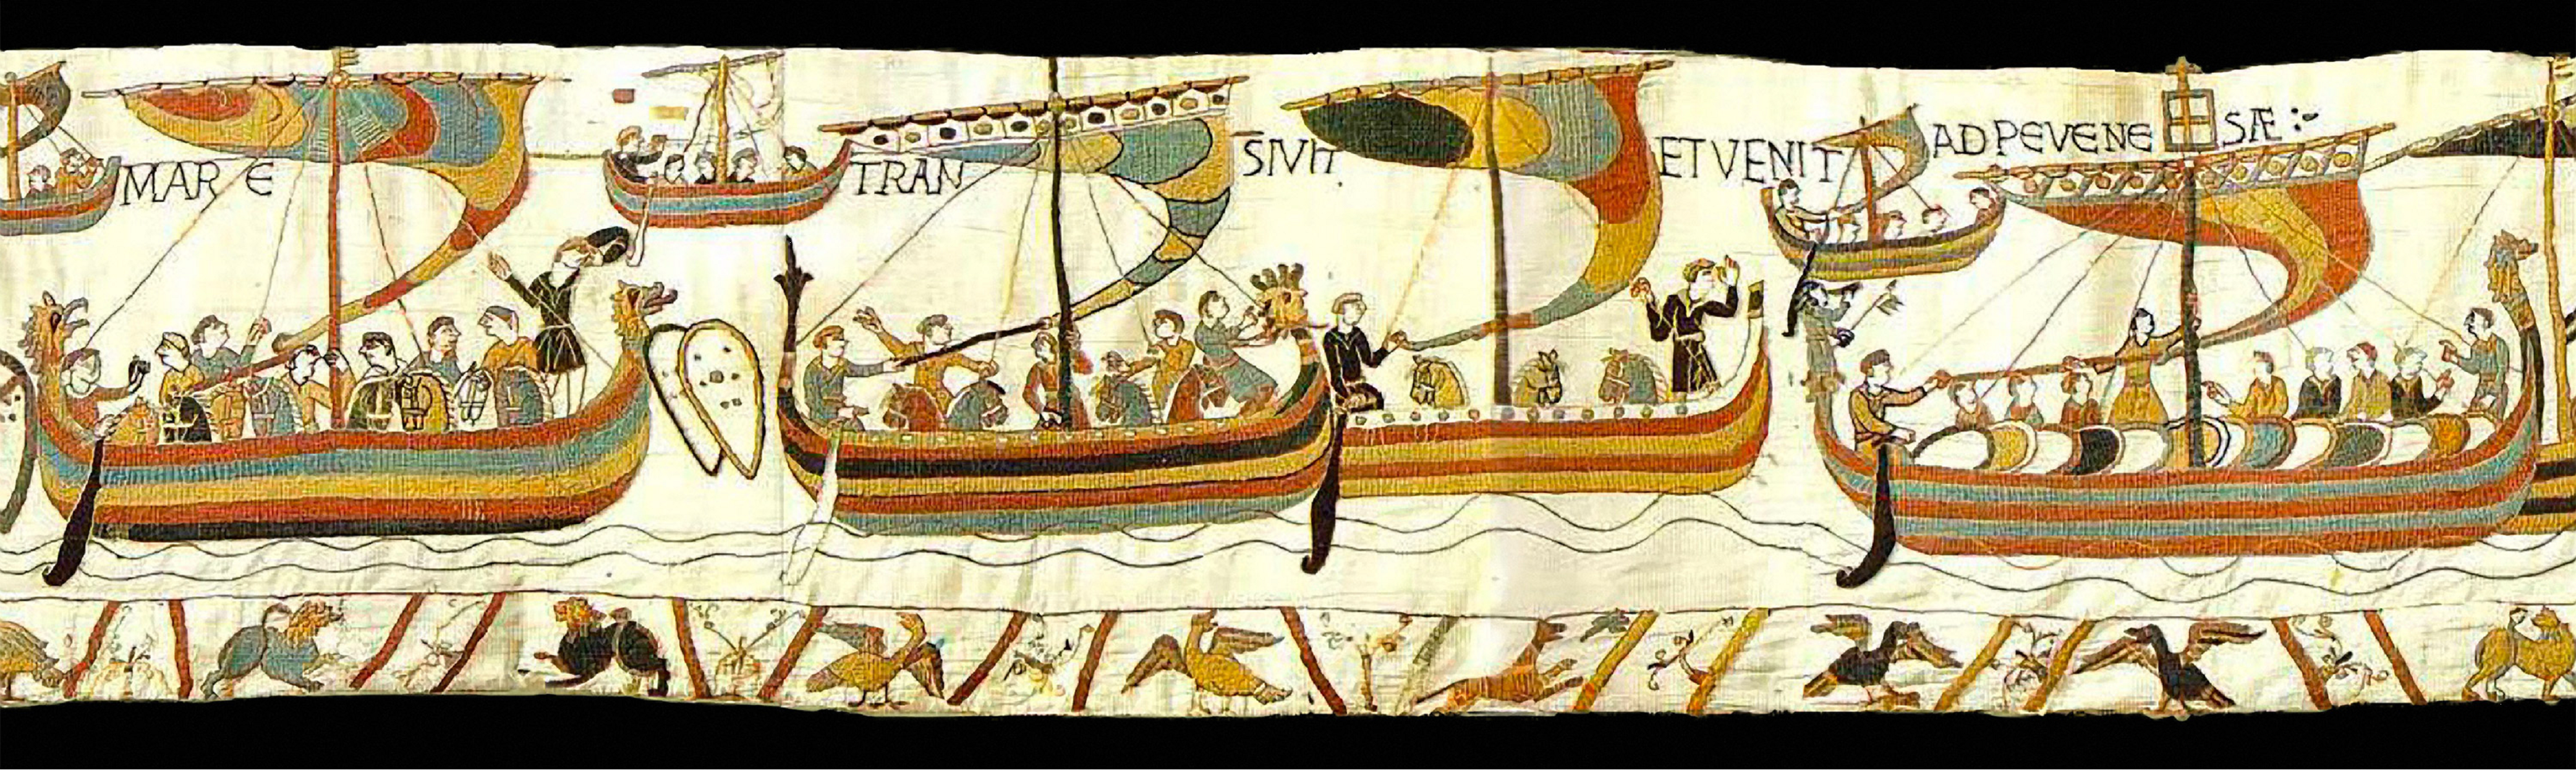 """The Meaning of """"Mora"""", the ship Matilda of Flanders gave William the Conqueror Bayeux-tapestry-mora"""